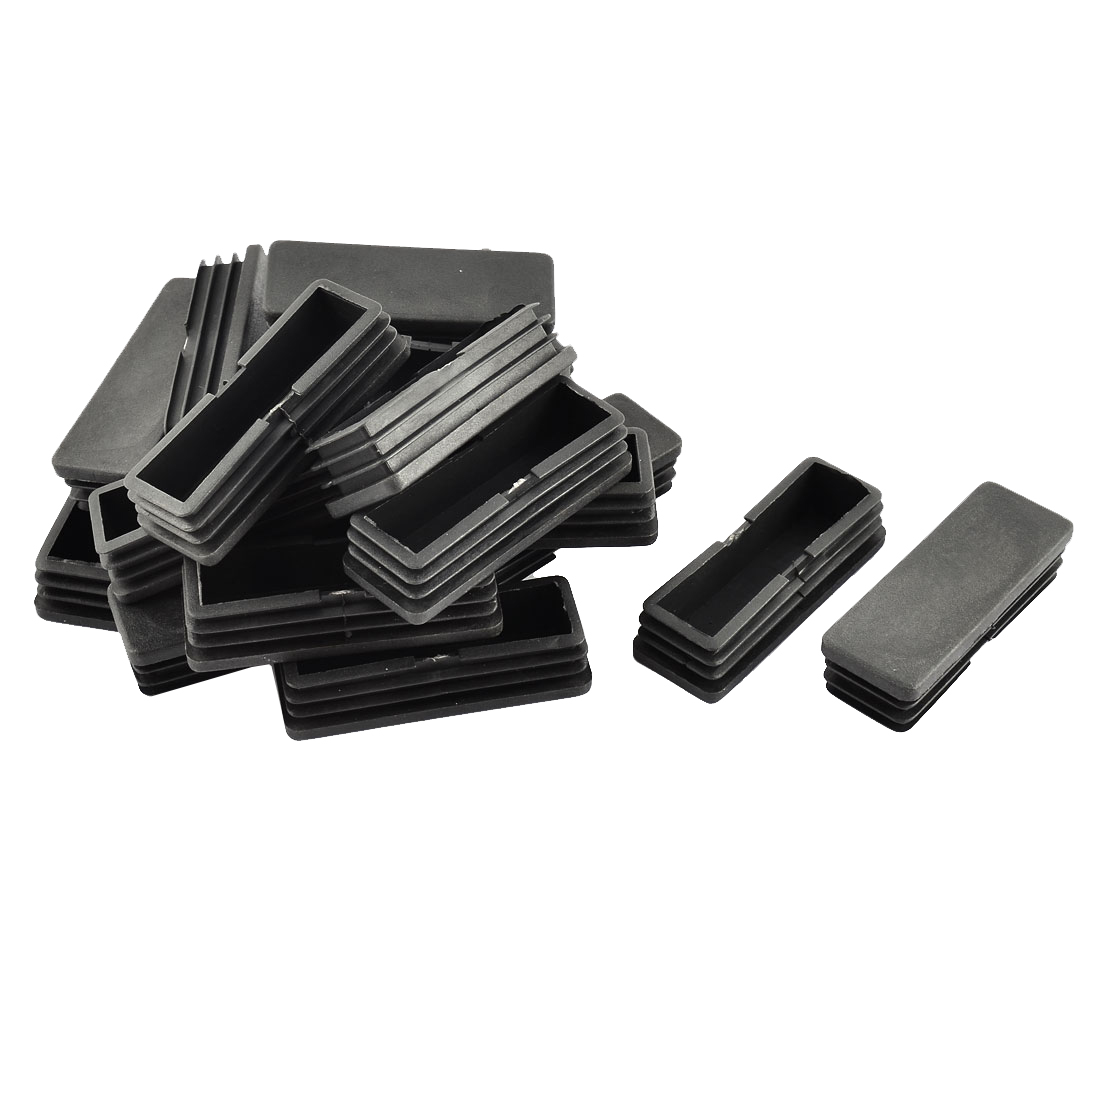 Home Office Floor No Scratch Plastic Chair Leg Tube Insert Black 68 x 23mm 20pcs